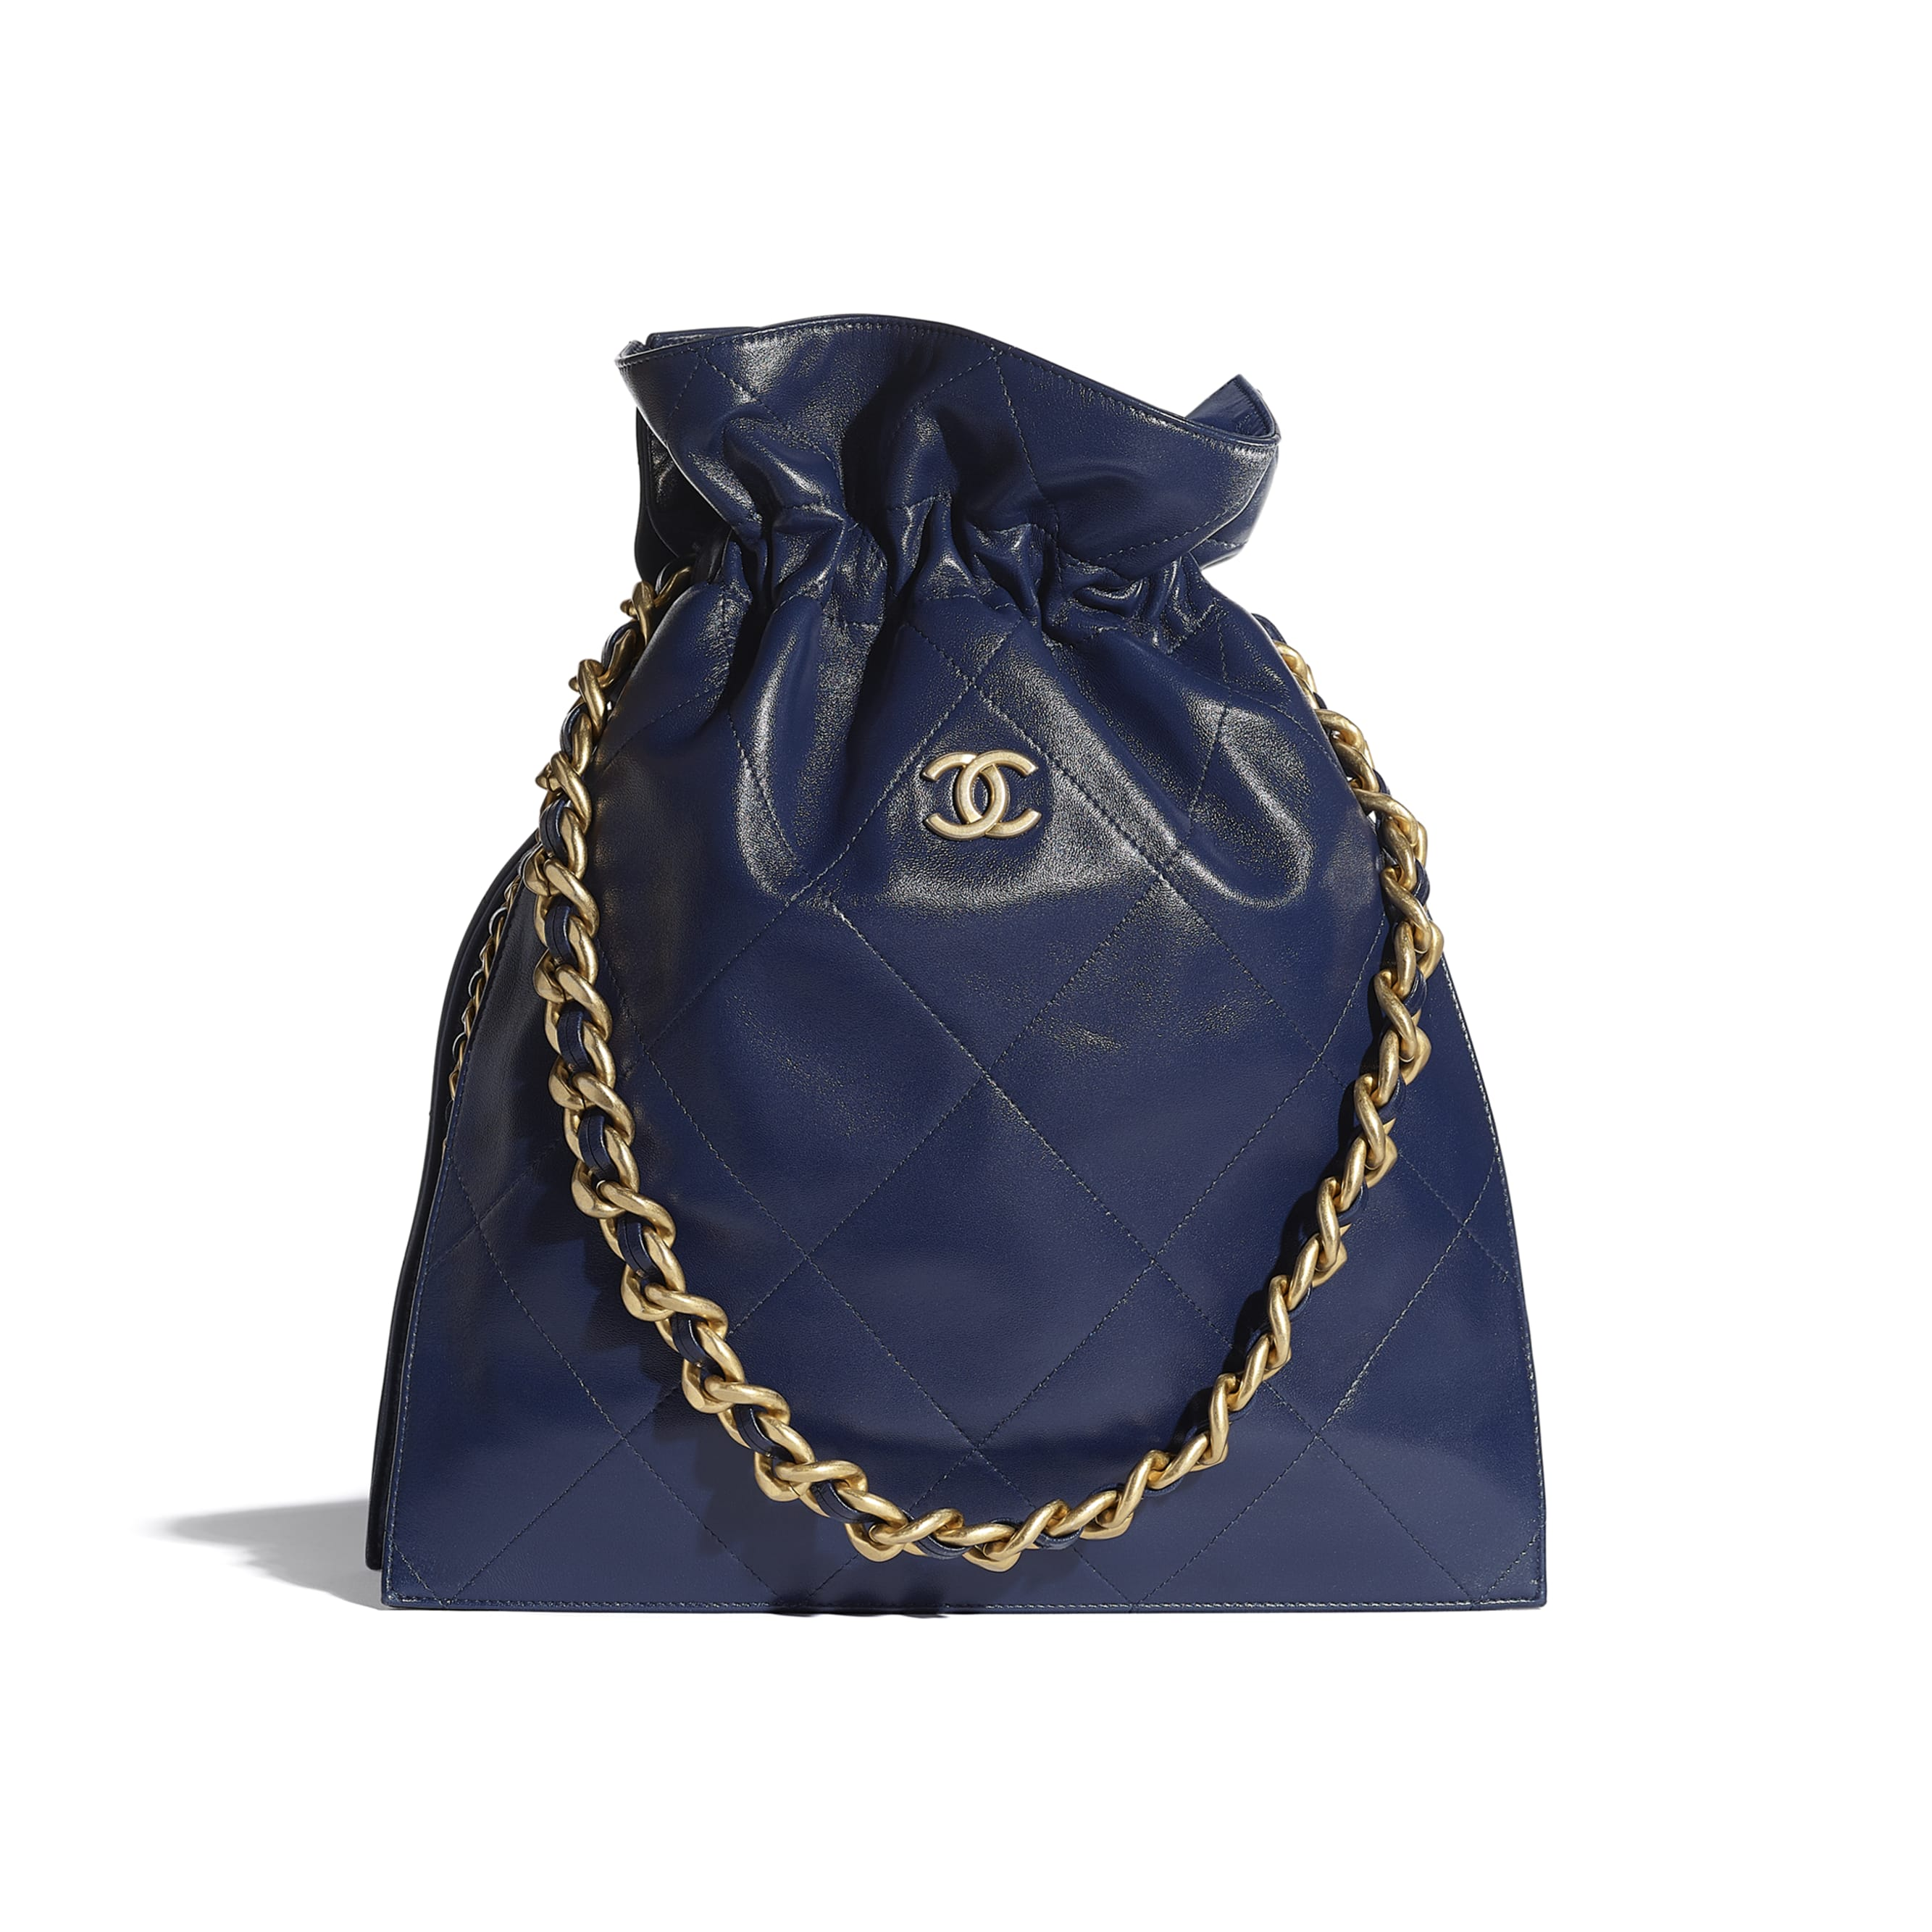 Large Tote - Navy Blue - Shiny Lambskin & Gold-Tone Metal - CHANEL - Default view - see standard sized version